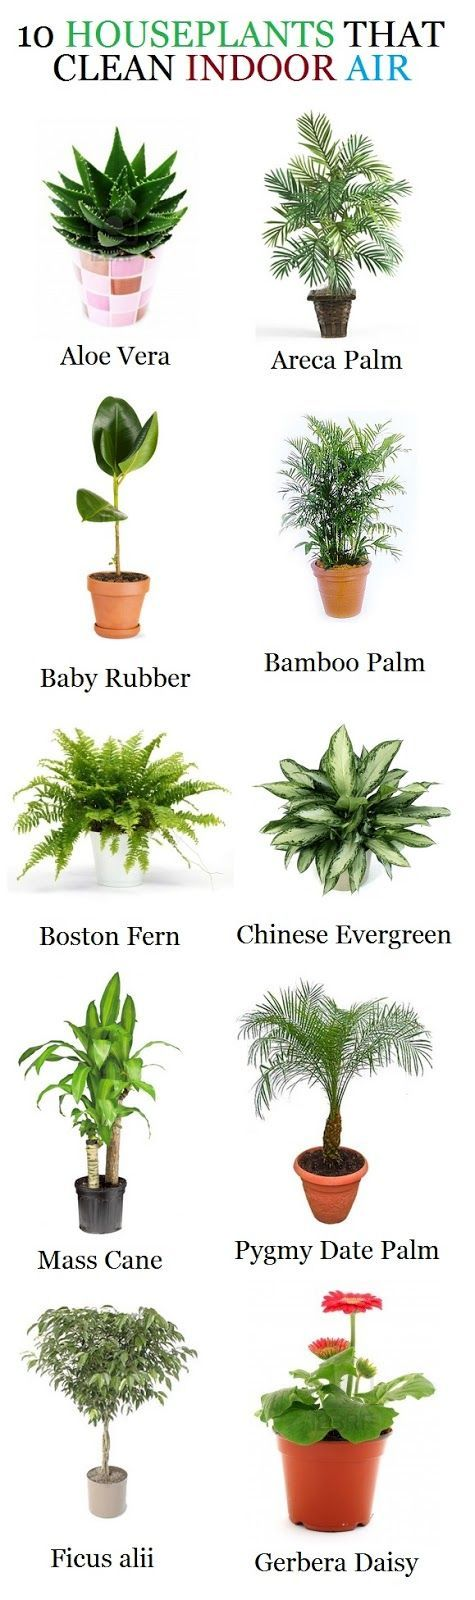 indoor-plants-clean-air.jpg